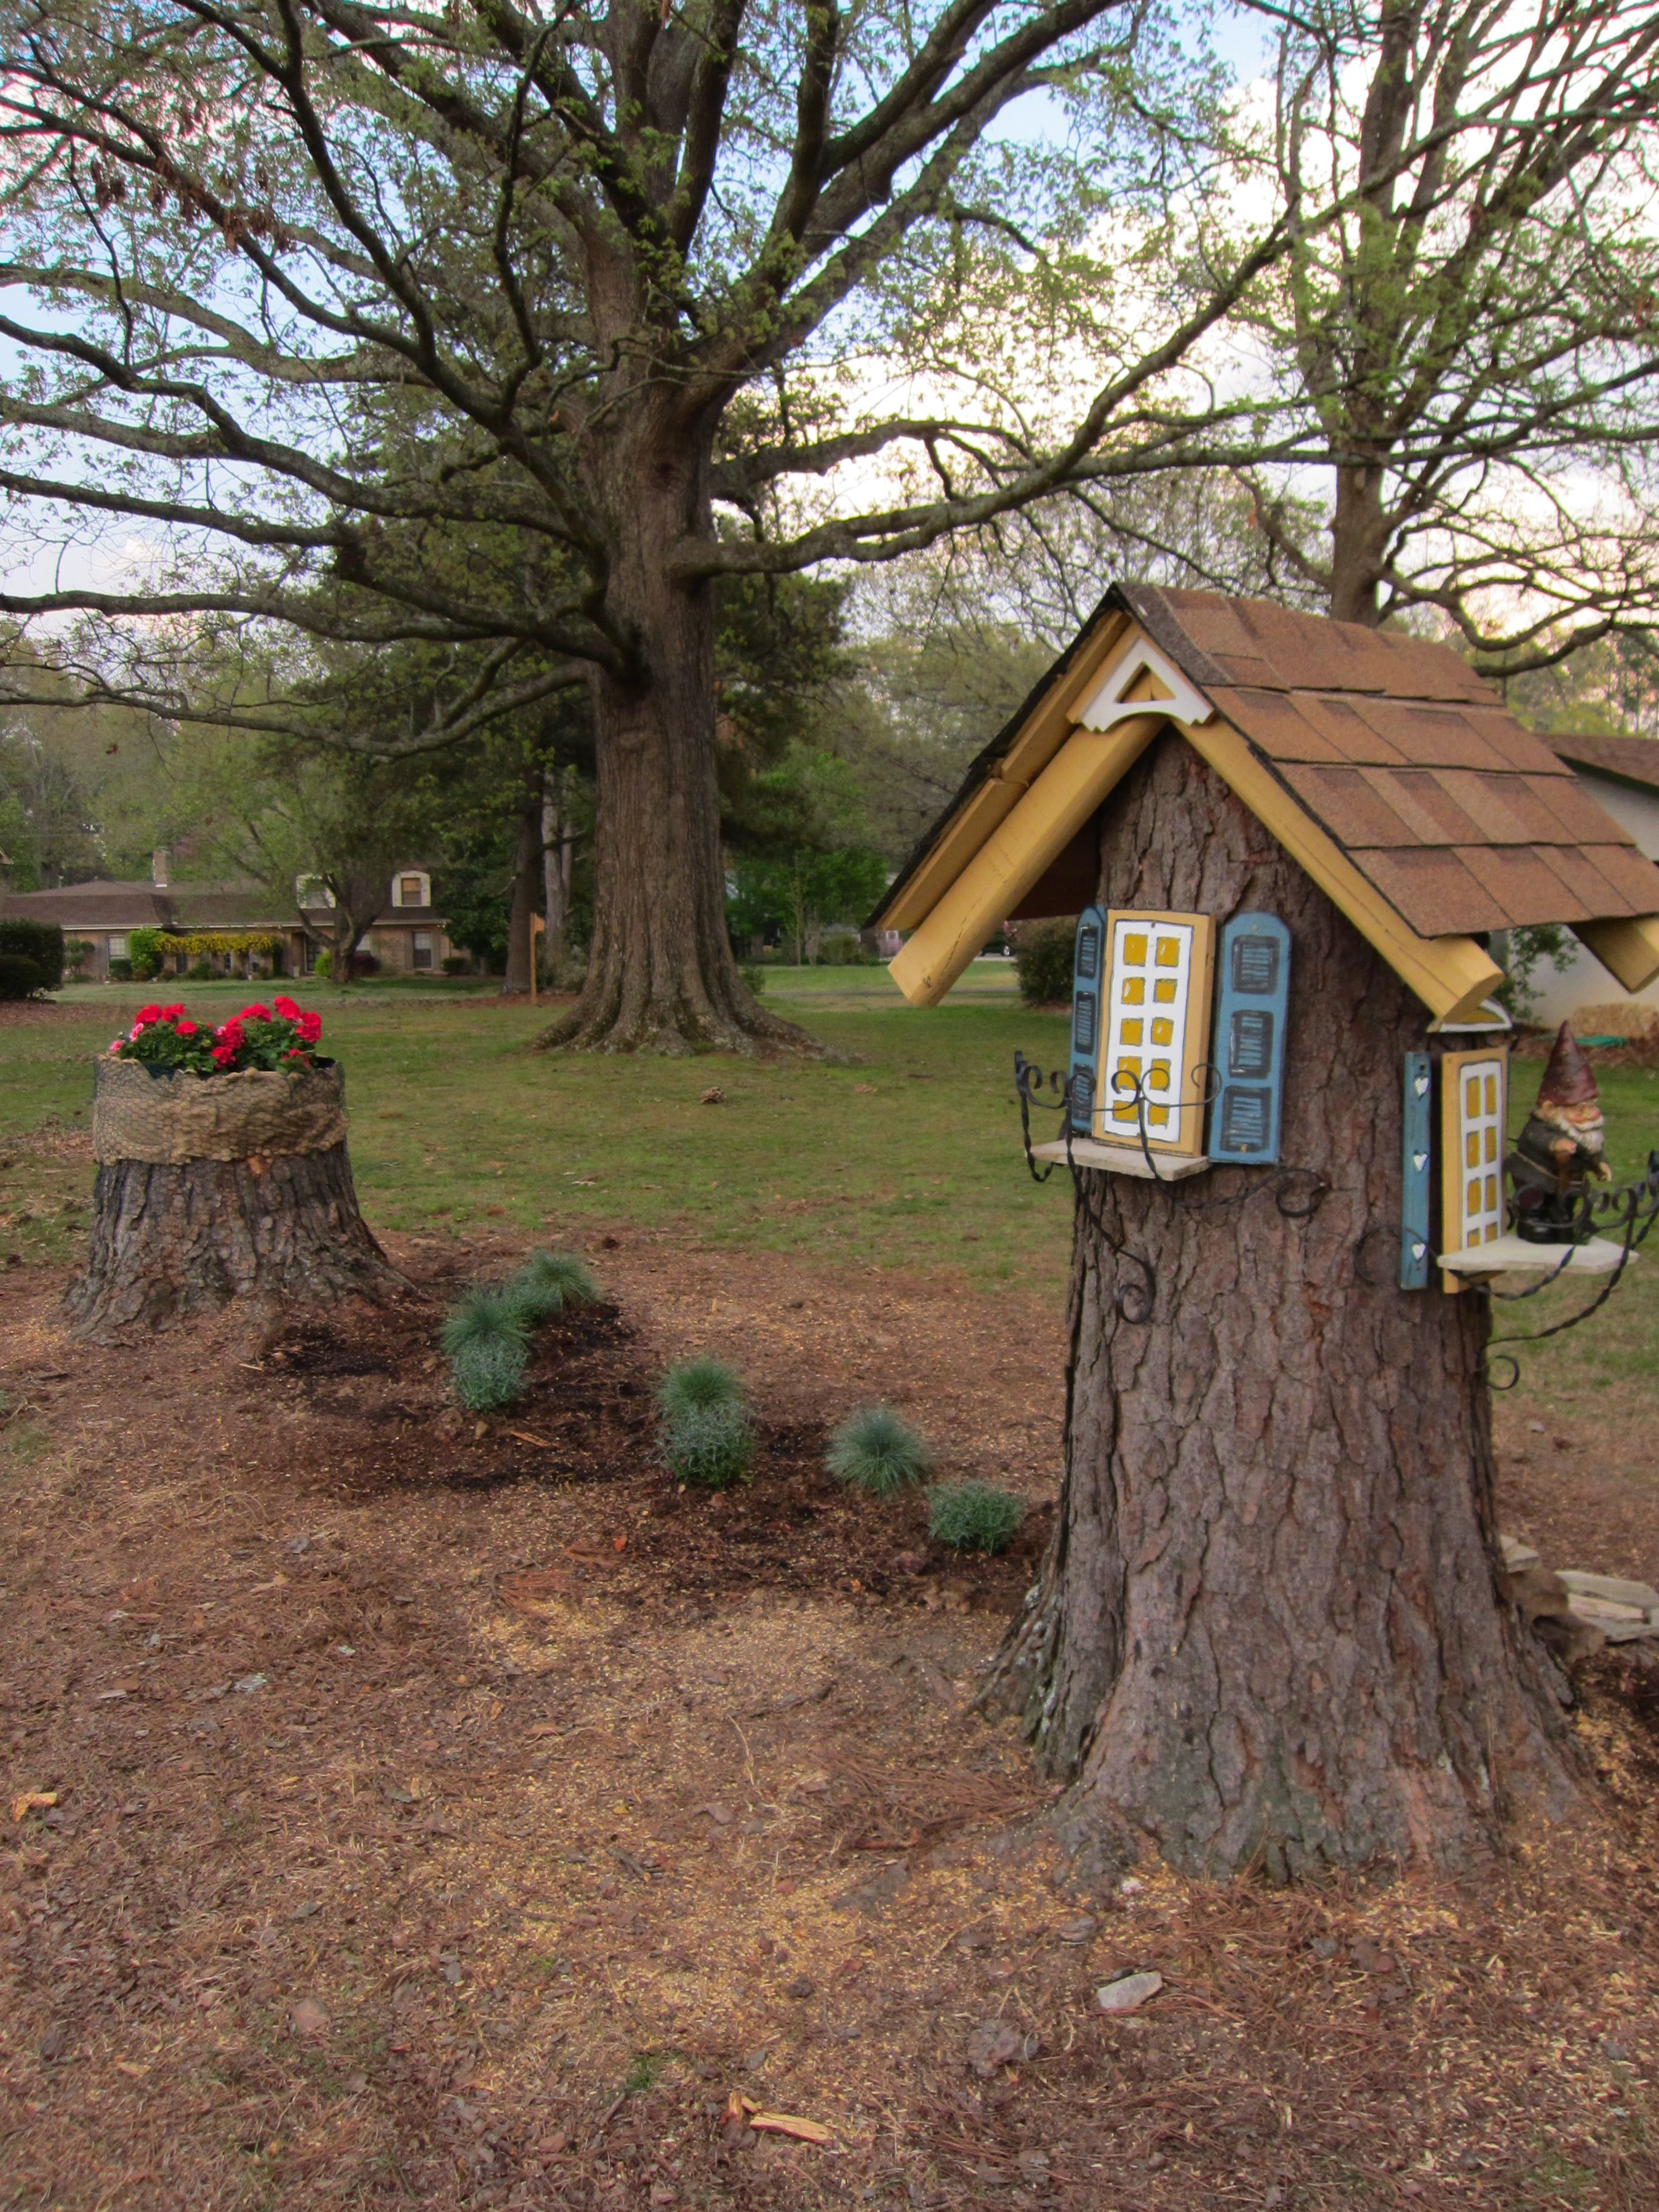 Gnome Tree Stump Home: This Is My Gnome House Built From A Pine Tree Stump. It Is